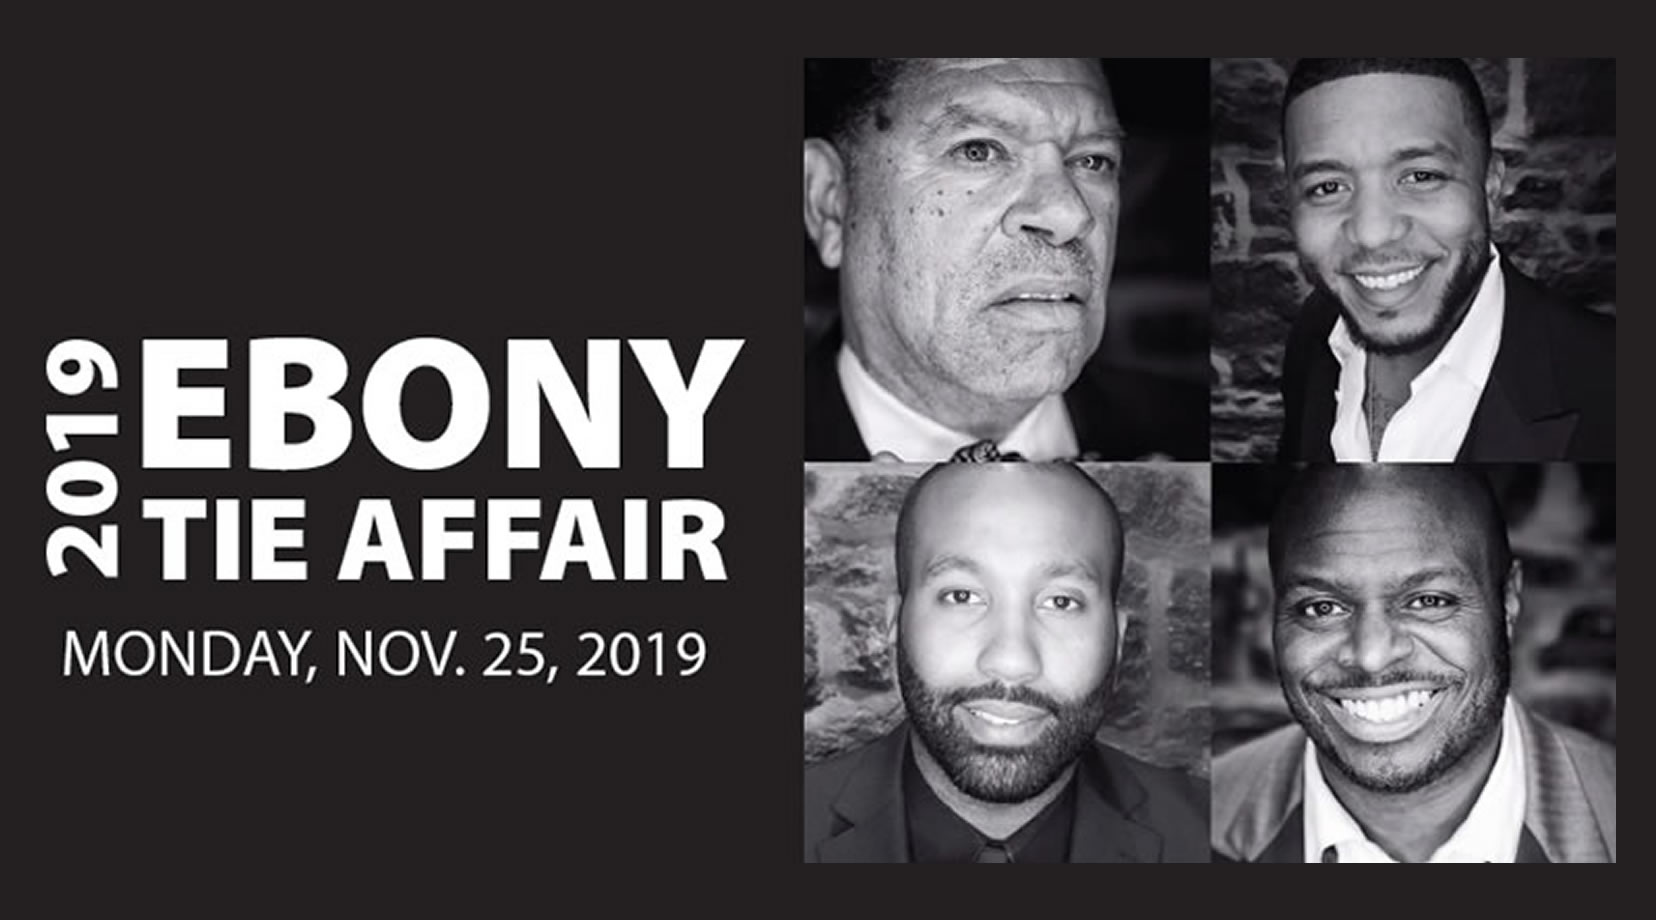 The Ebony Tie Affair has become the signature event celebrating the contributions of African-American men throughout the Delaware Valley.